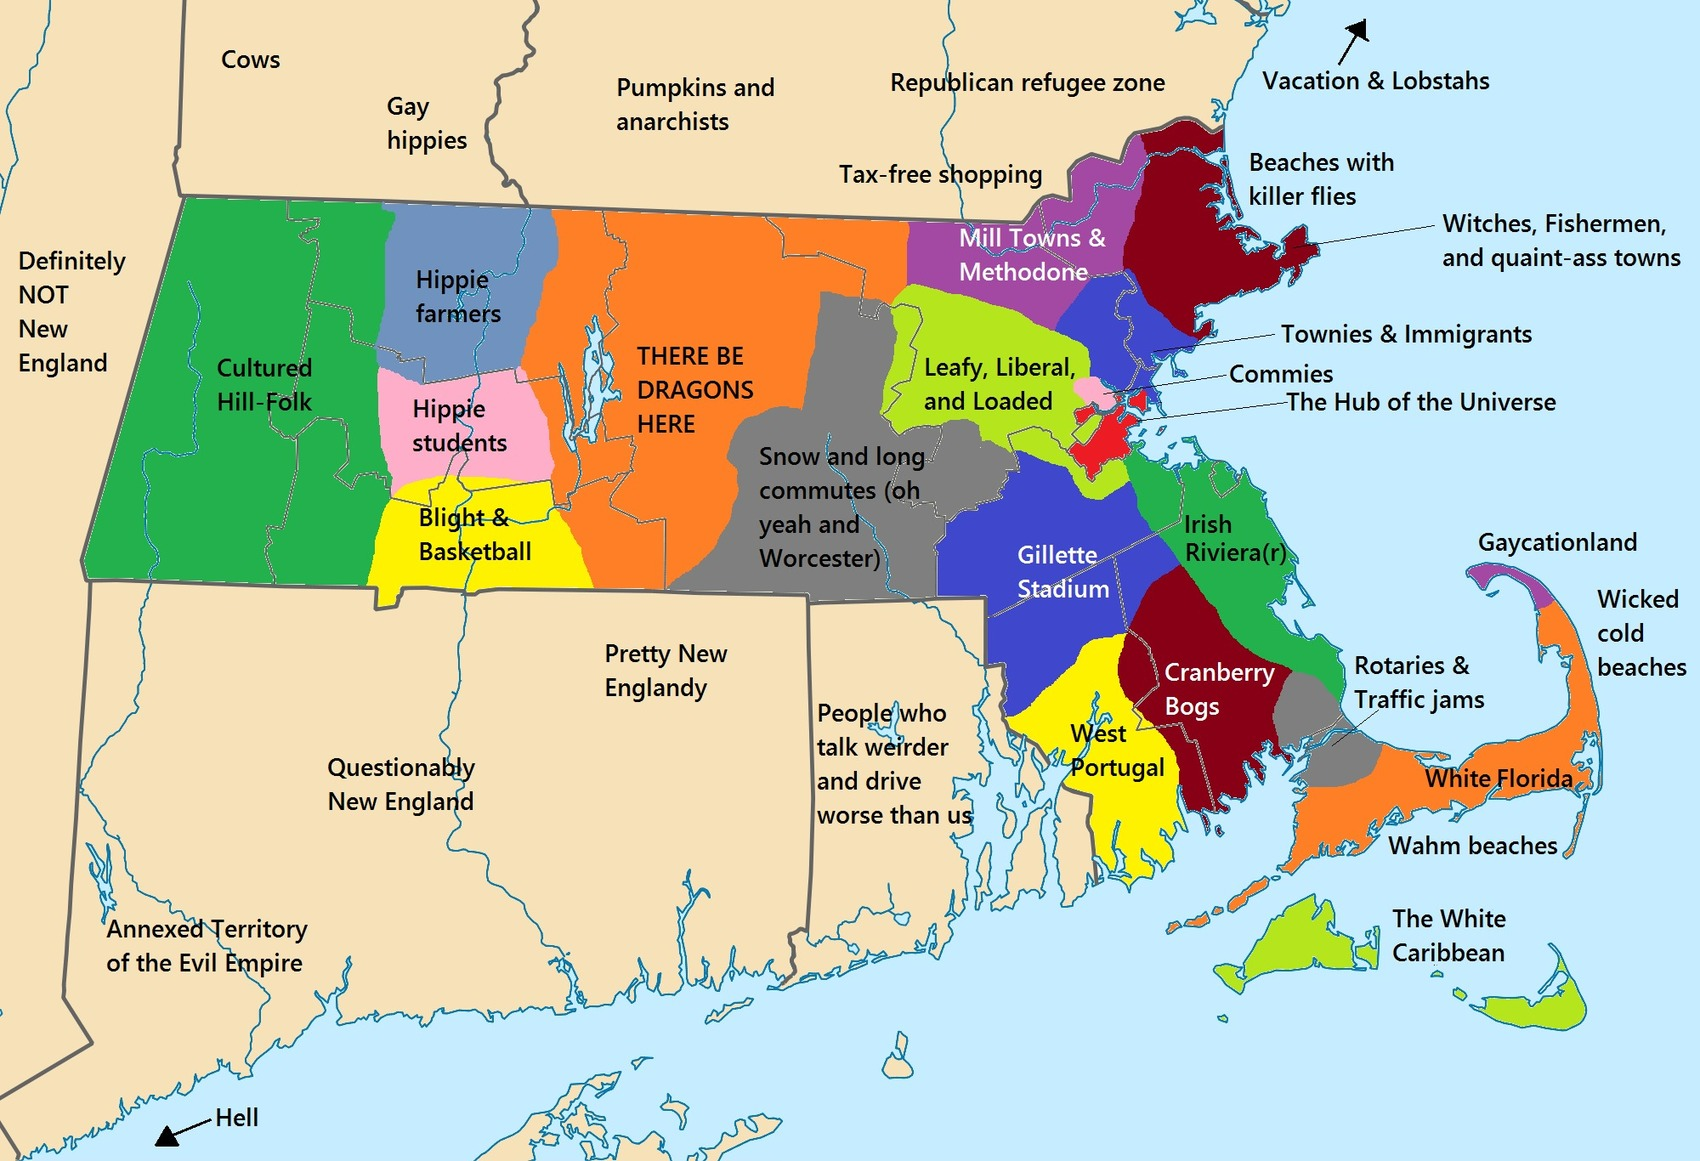 Machusetts stereotypes map | RHODE ISLAND GEOGRAPHY ... on nationalism of africa, community of africa, subcultures of africa, perceptions of africa, identity of africa, labels of africa, nature of africa, love of africa, society of africa, resistance of africa, caste system of africa, women of africa, books of africa, misconceptions of africa, education of africa, family of africa, stereotypes about men, racism of africa, babies of africa,